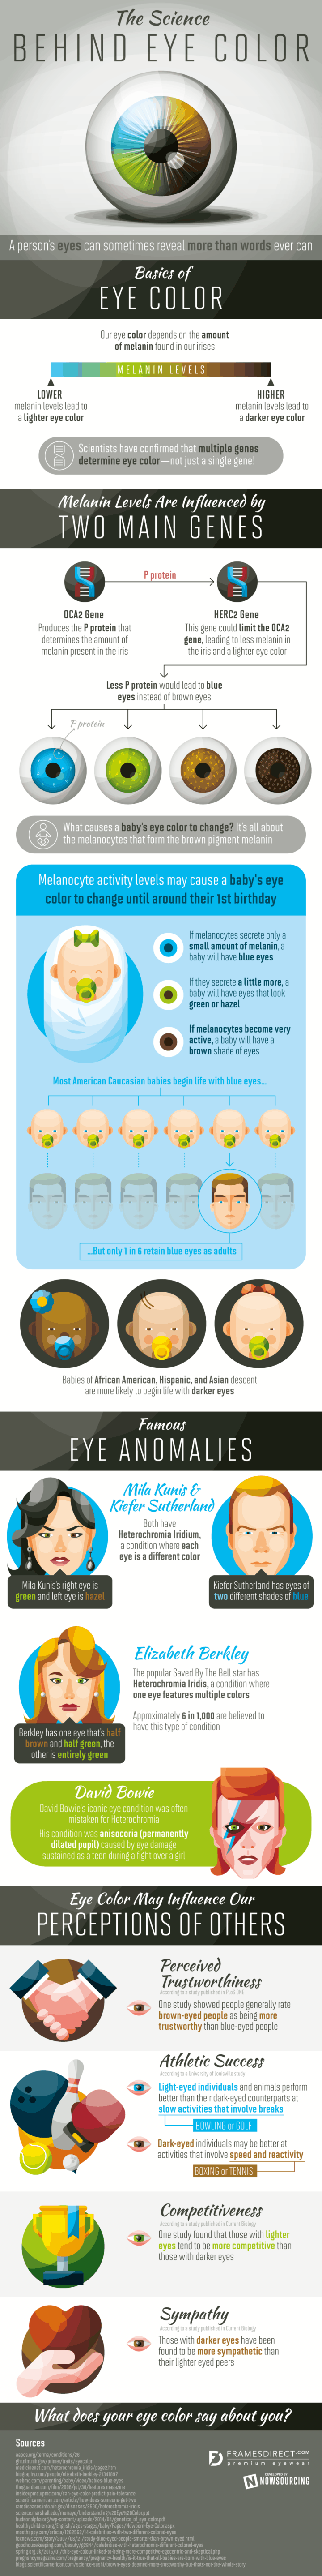 What Does Your Eye Color Say About You Infographic